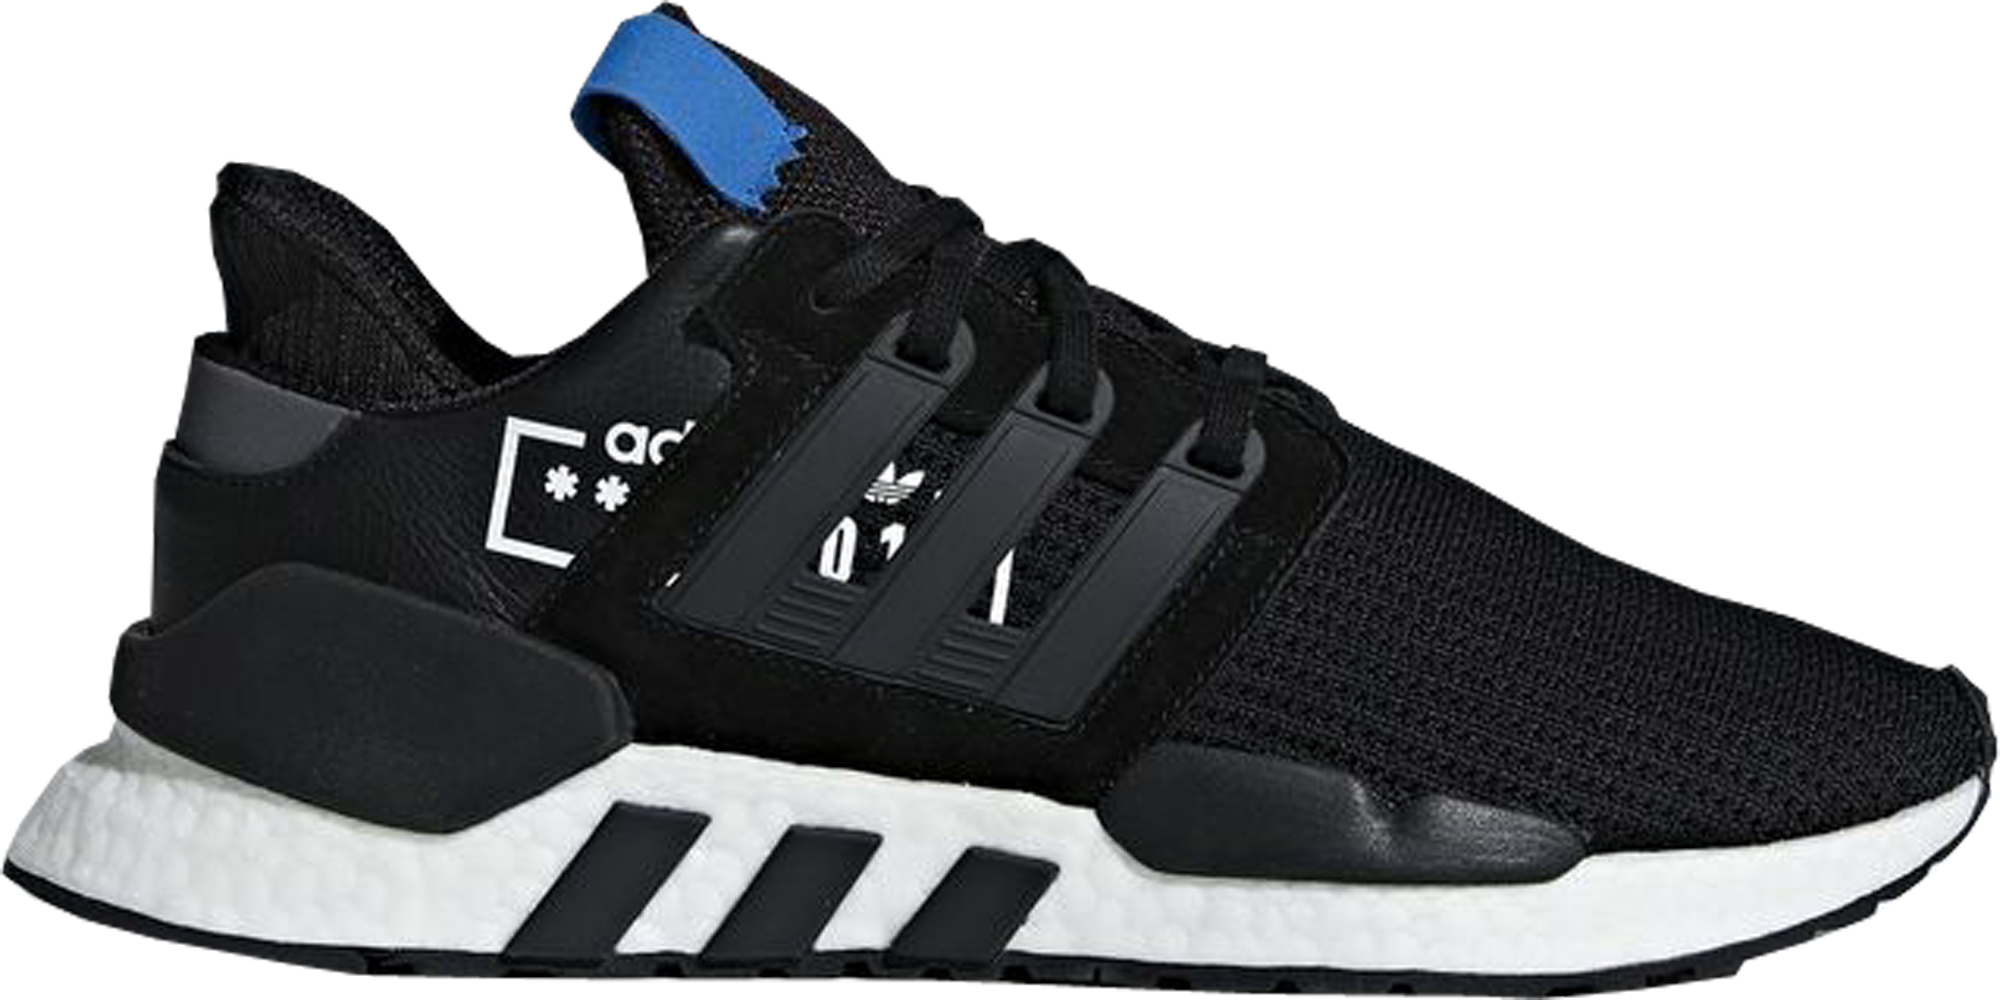 adidas eqt support on sale